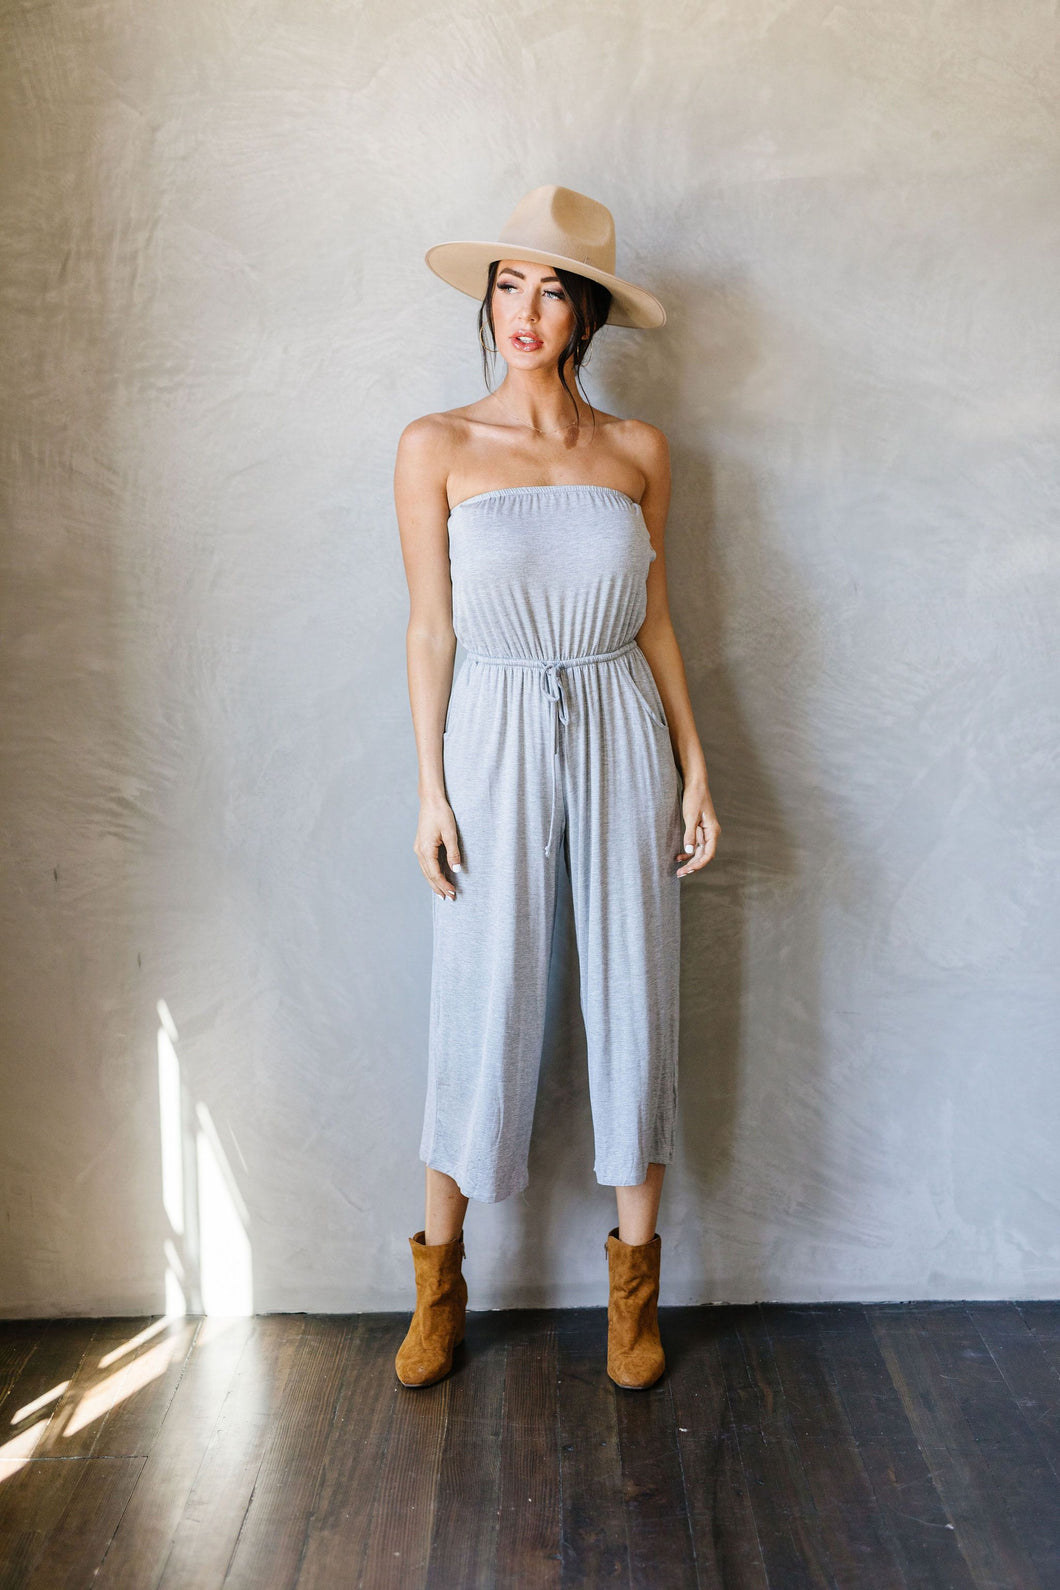 Cropped Tube Top Jumpsuit In Heather Gray - SAMPLE - Smith & Vena Online Boutique